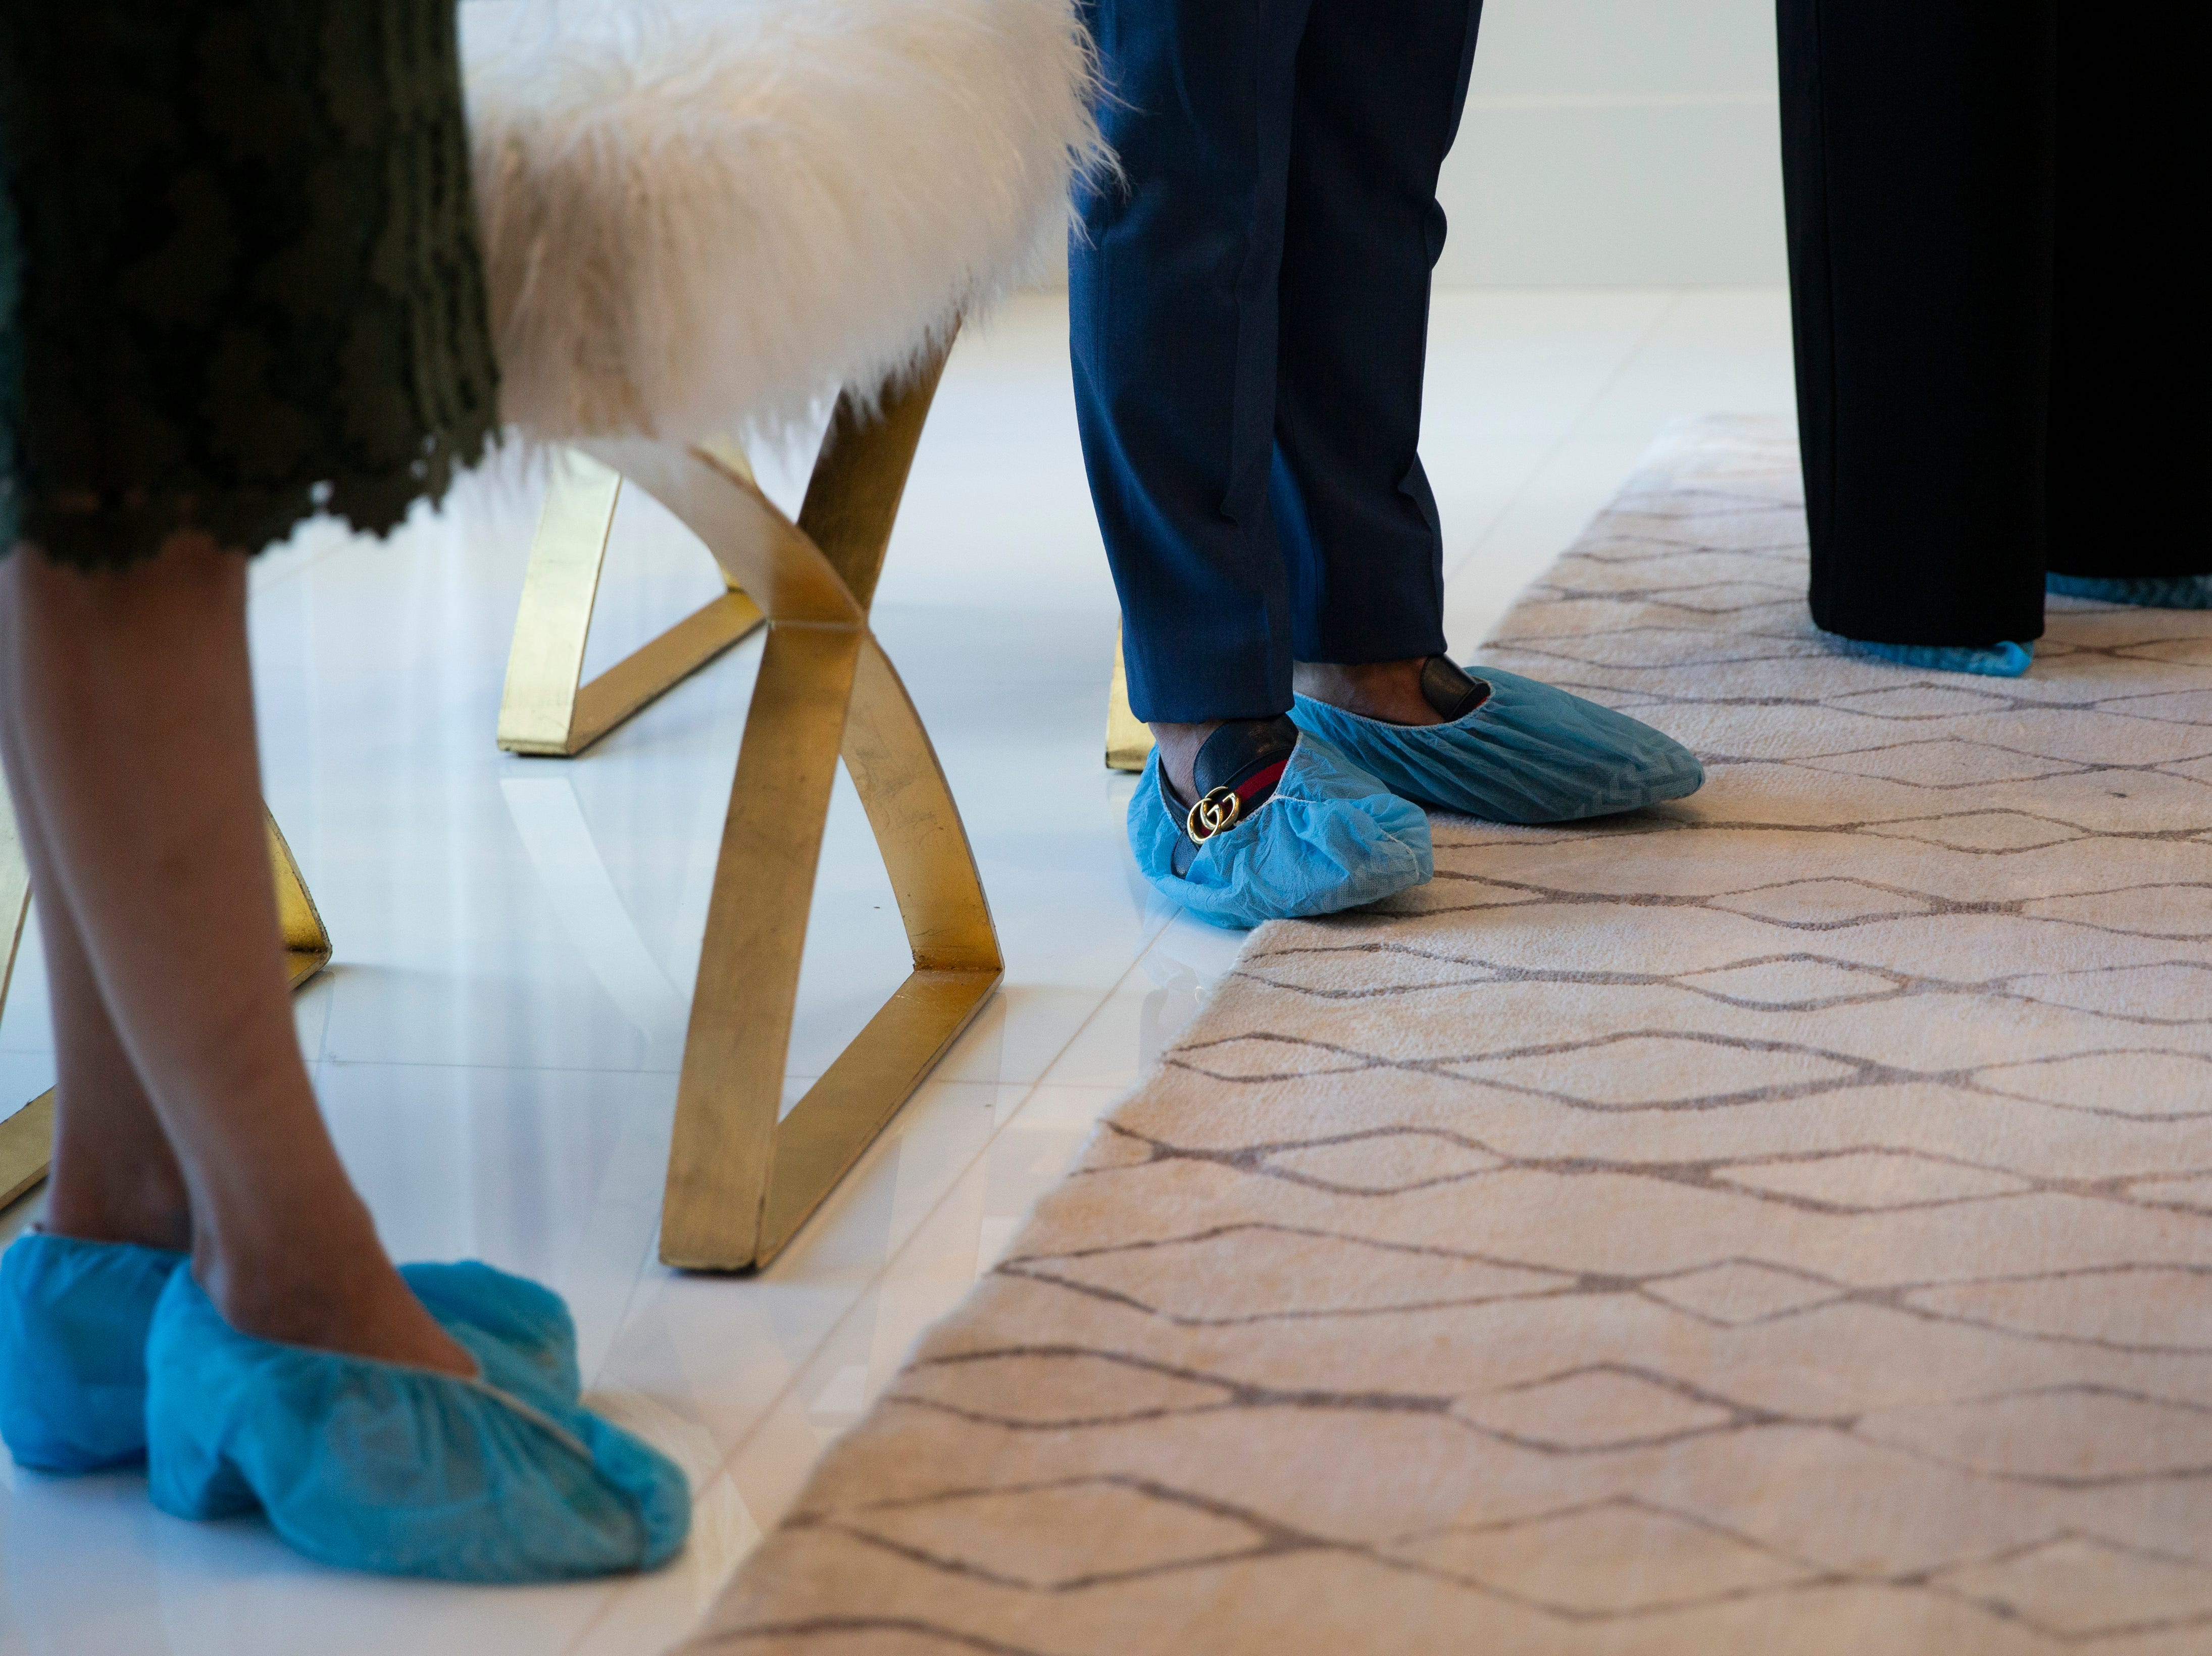 From left to right, home designer Brenda Canada and interior designers Wilfredo Emanuel and Ashton Reams speak to guests during the 7th annual Kitchen Tour, hosted by the Naples Woman's Club in Naples on Wednesday, January 16, 2019. All attendees were asked to wear protective covers over their shoes before entering each home.